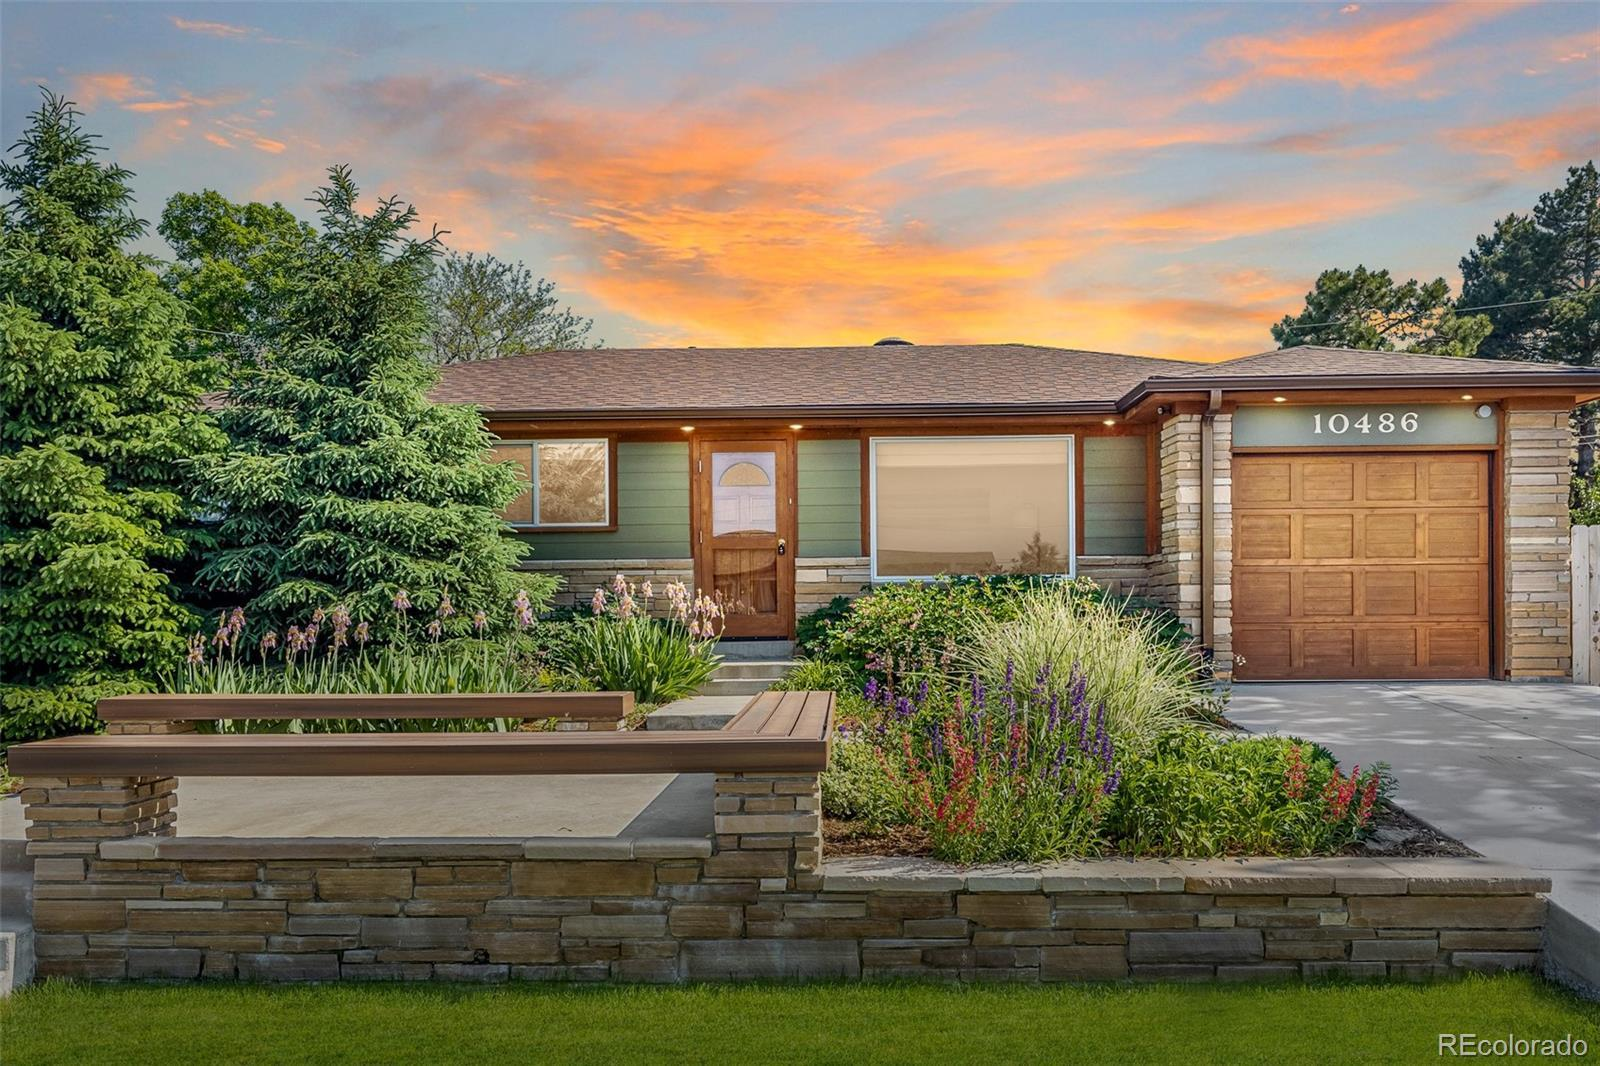 10486 W 9th Place, Lakewood, CO 80215 - #: 6230870